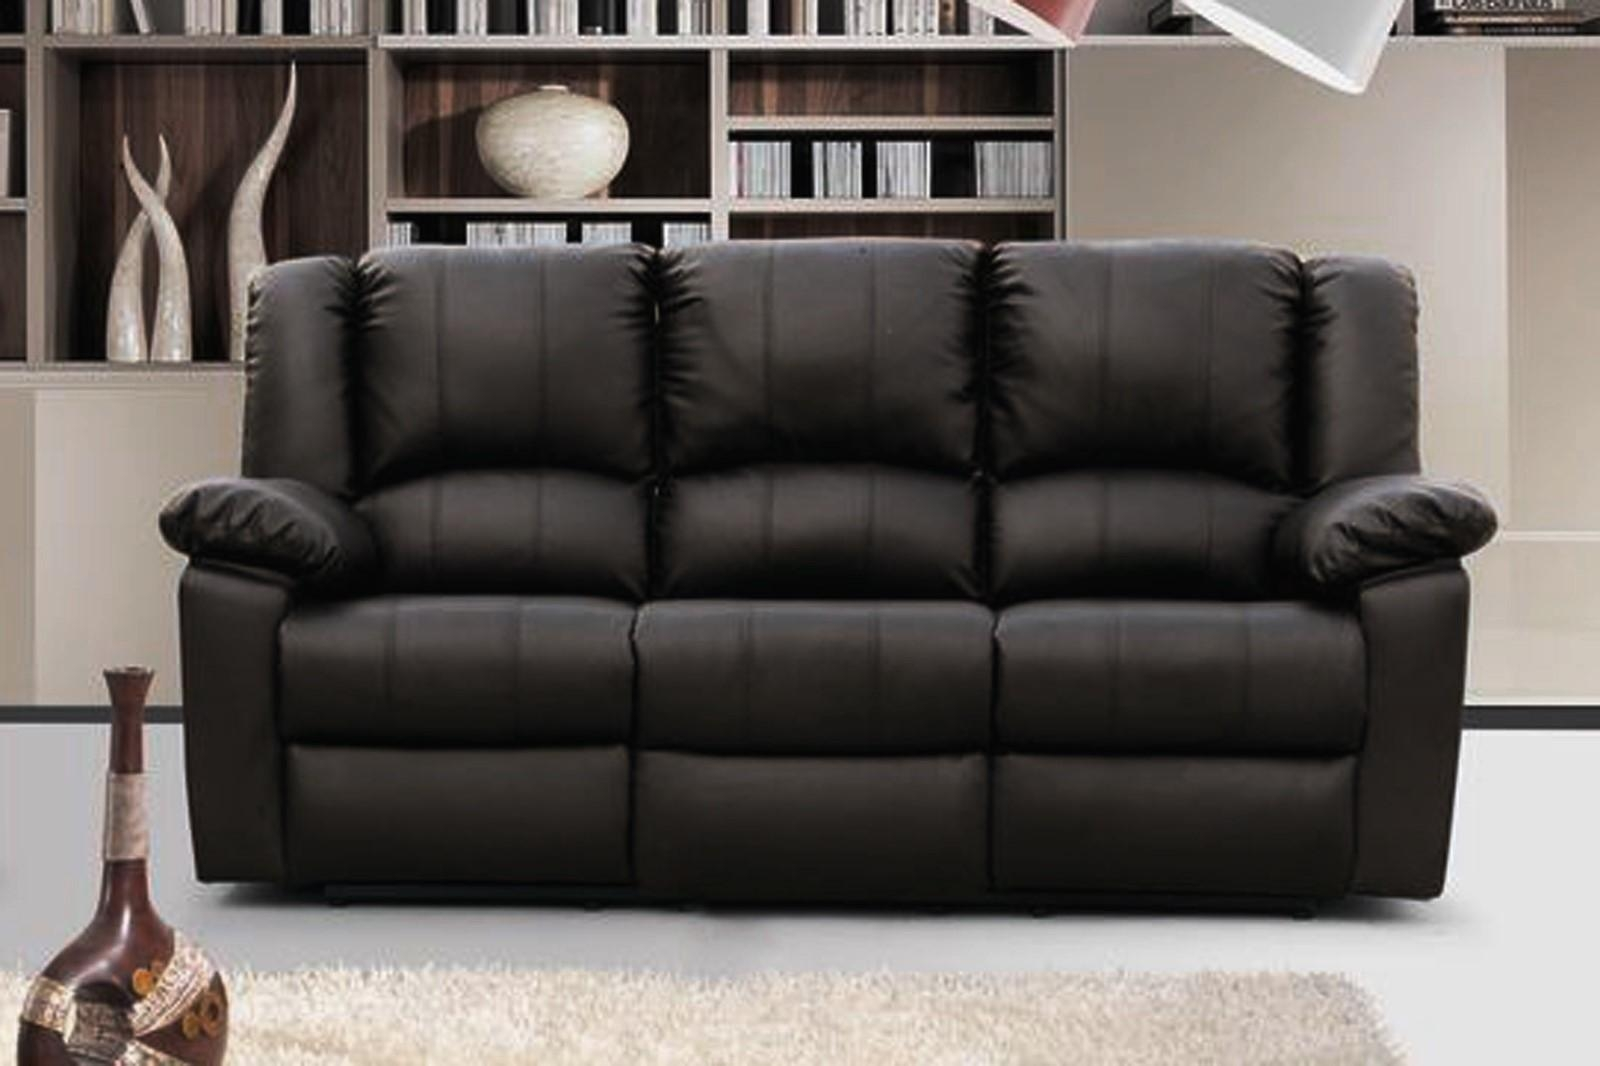 Sofa : 3 Seater Leather Sofa Recliner Home Style Tips Unique At 3 With 3 Seater Leather Sofas (View 3 of 20)